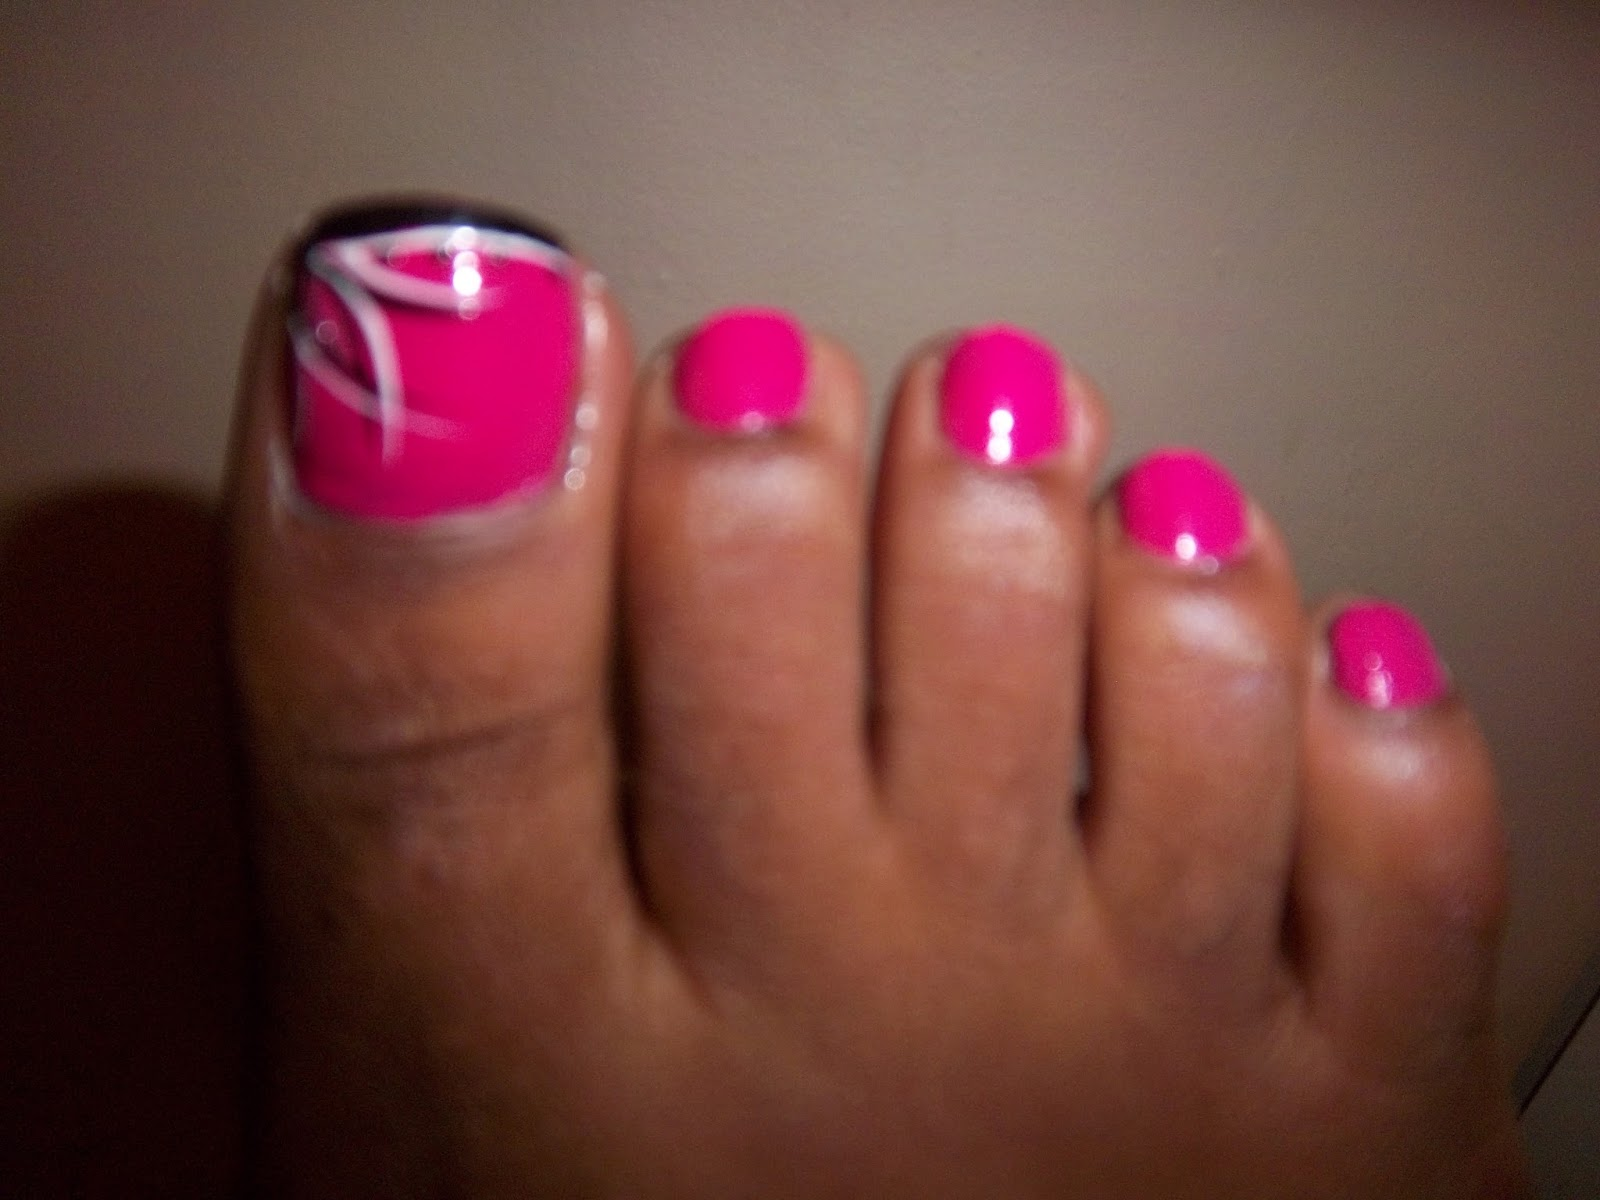 Wymeakas world how to pink toe nail art how to pink toe nail art prinsesfo Images